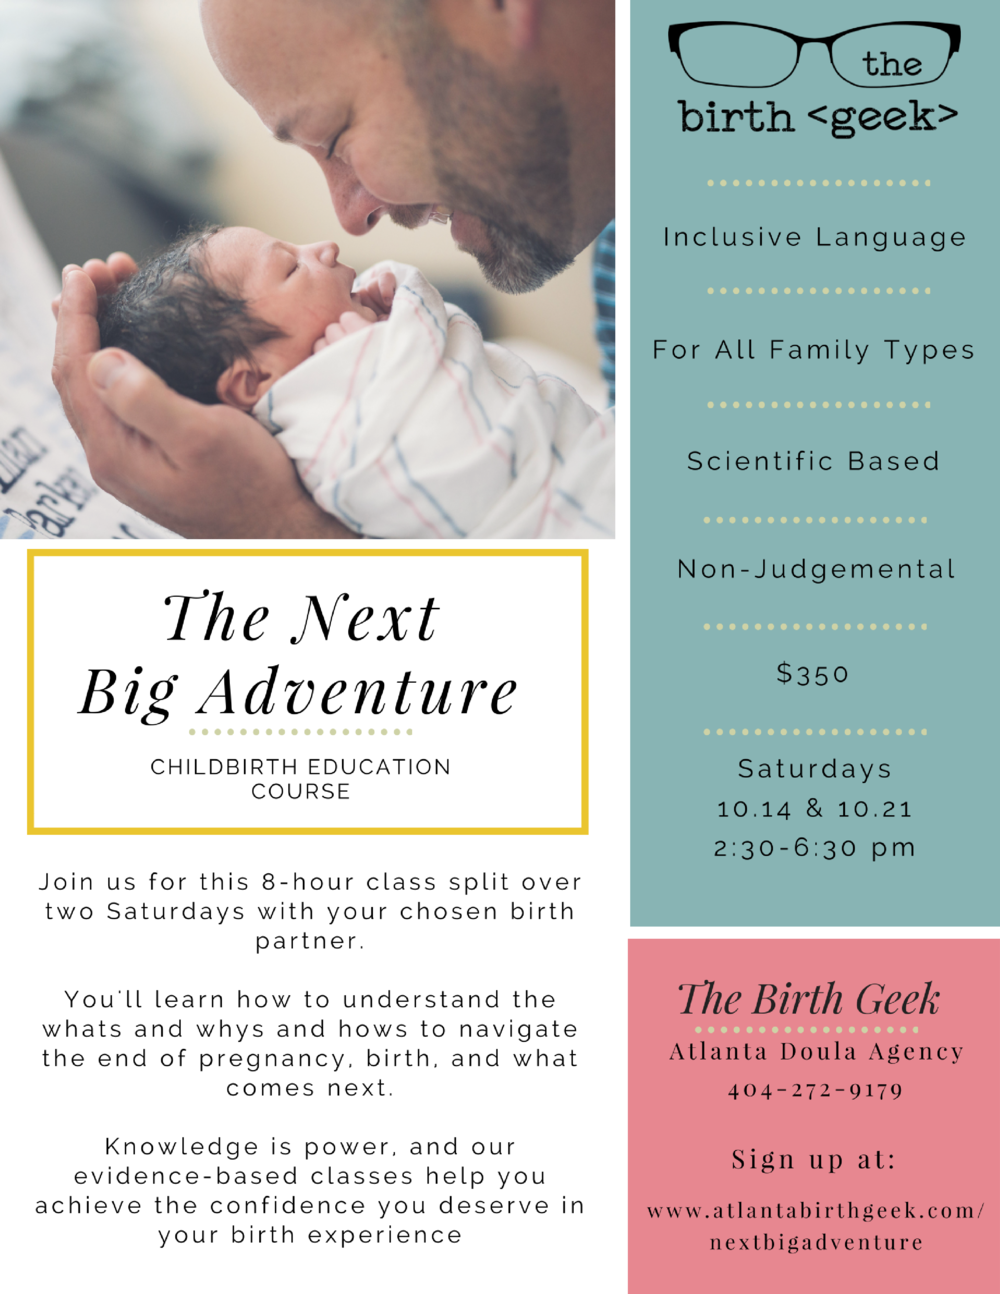 An Atlanta childbirth education course in east Atlanta. October 2017 for 8 hours with The Birth Geek, an Atlanta Doula Agency.